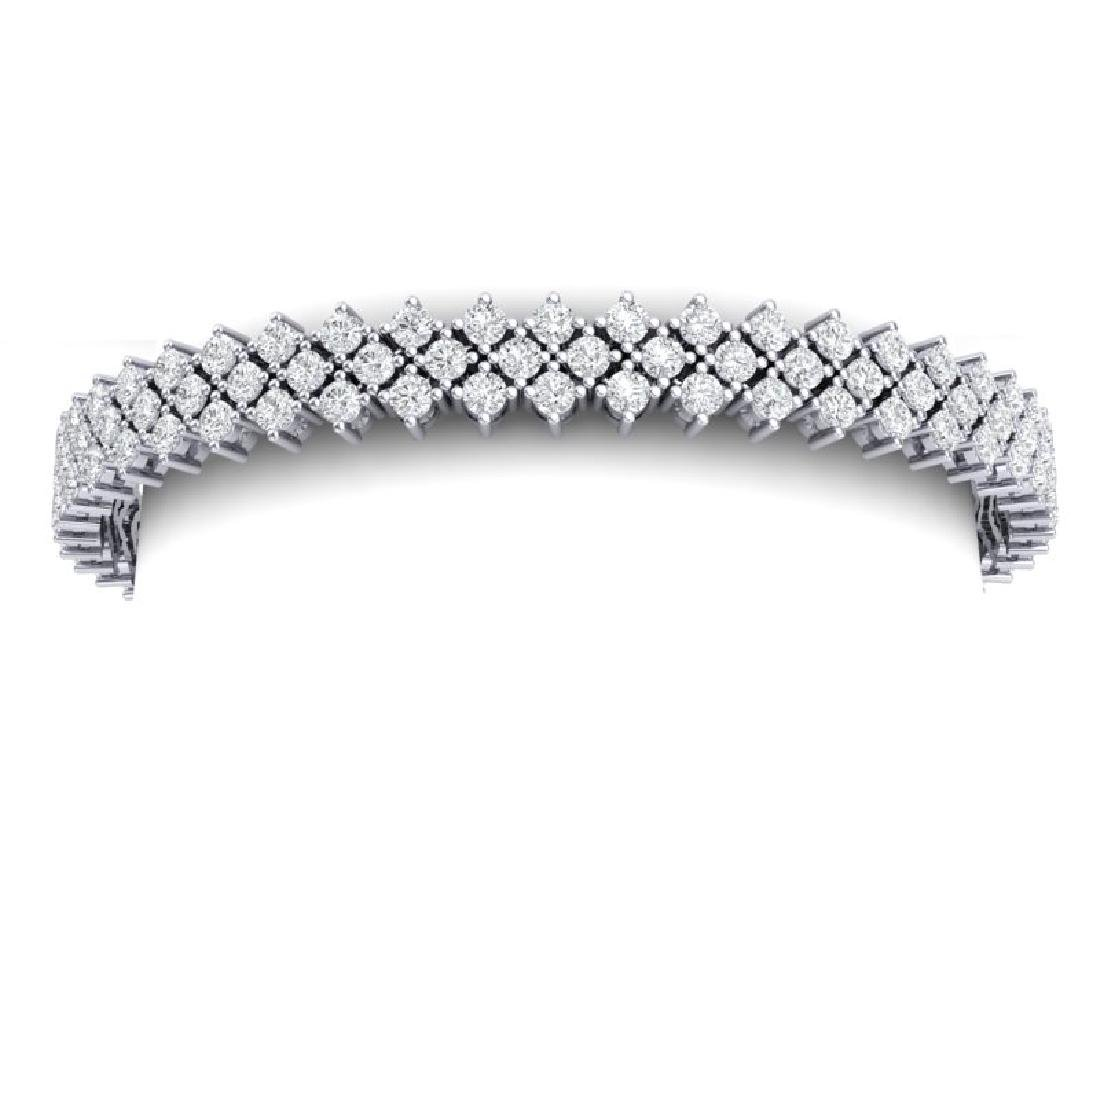 10 CTW Certified SI/I Diamond Bracelet 18K White Gold - 2